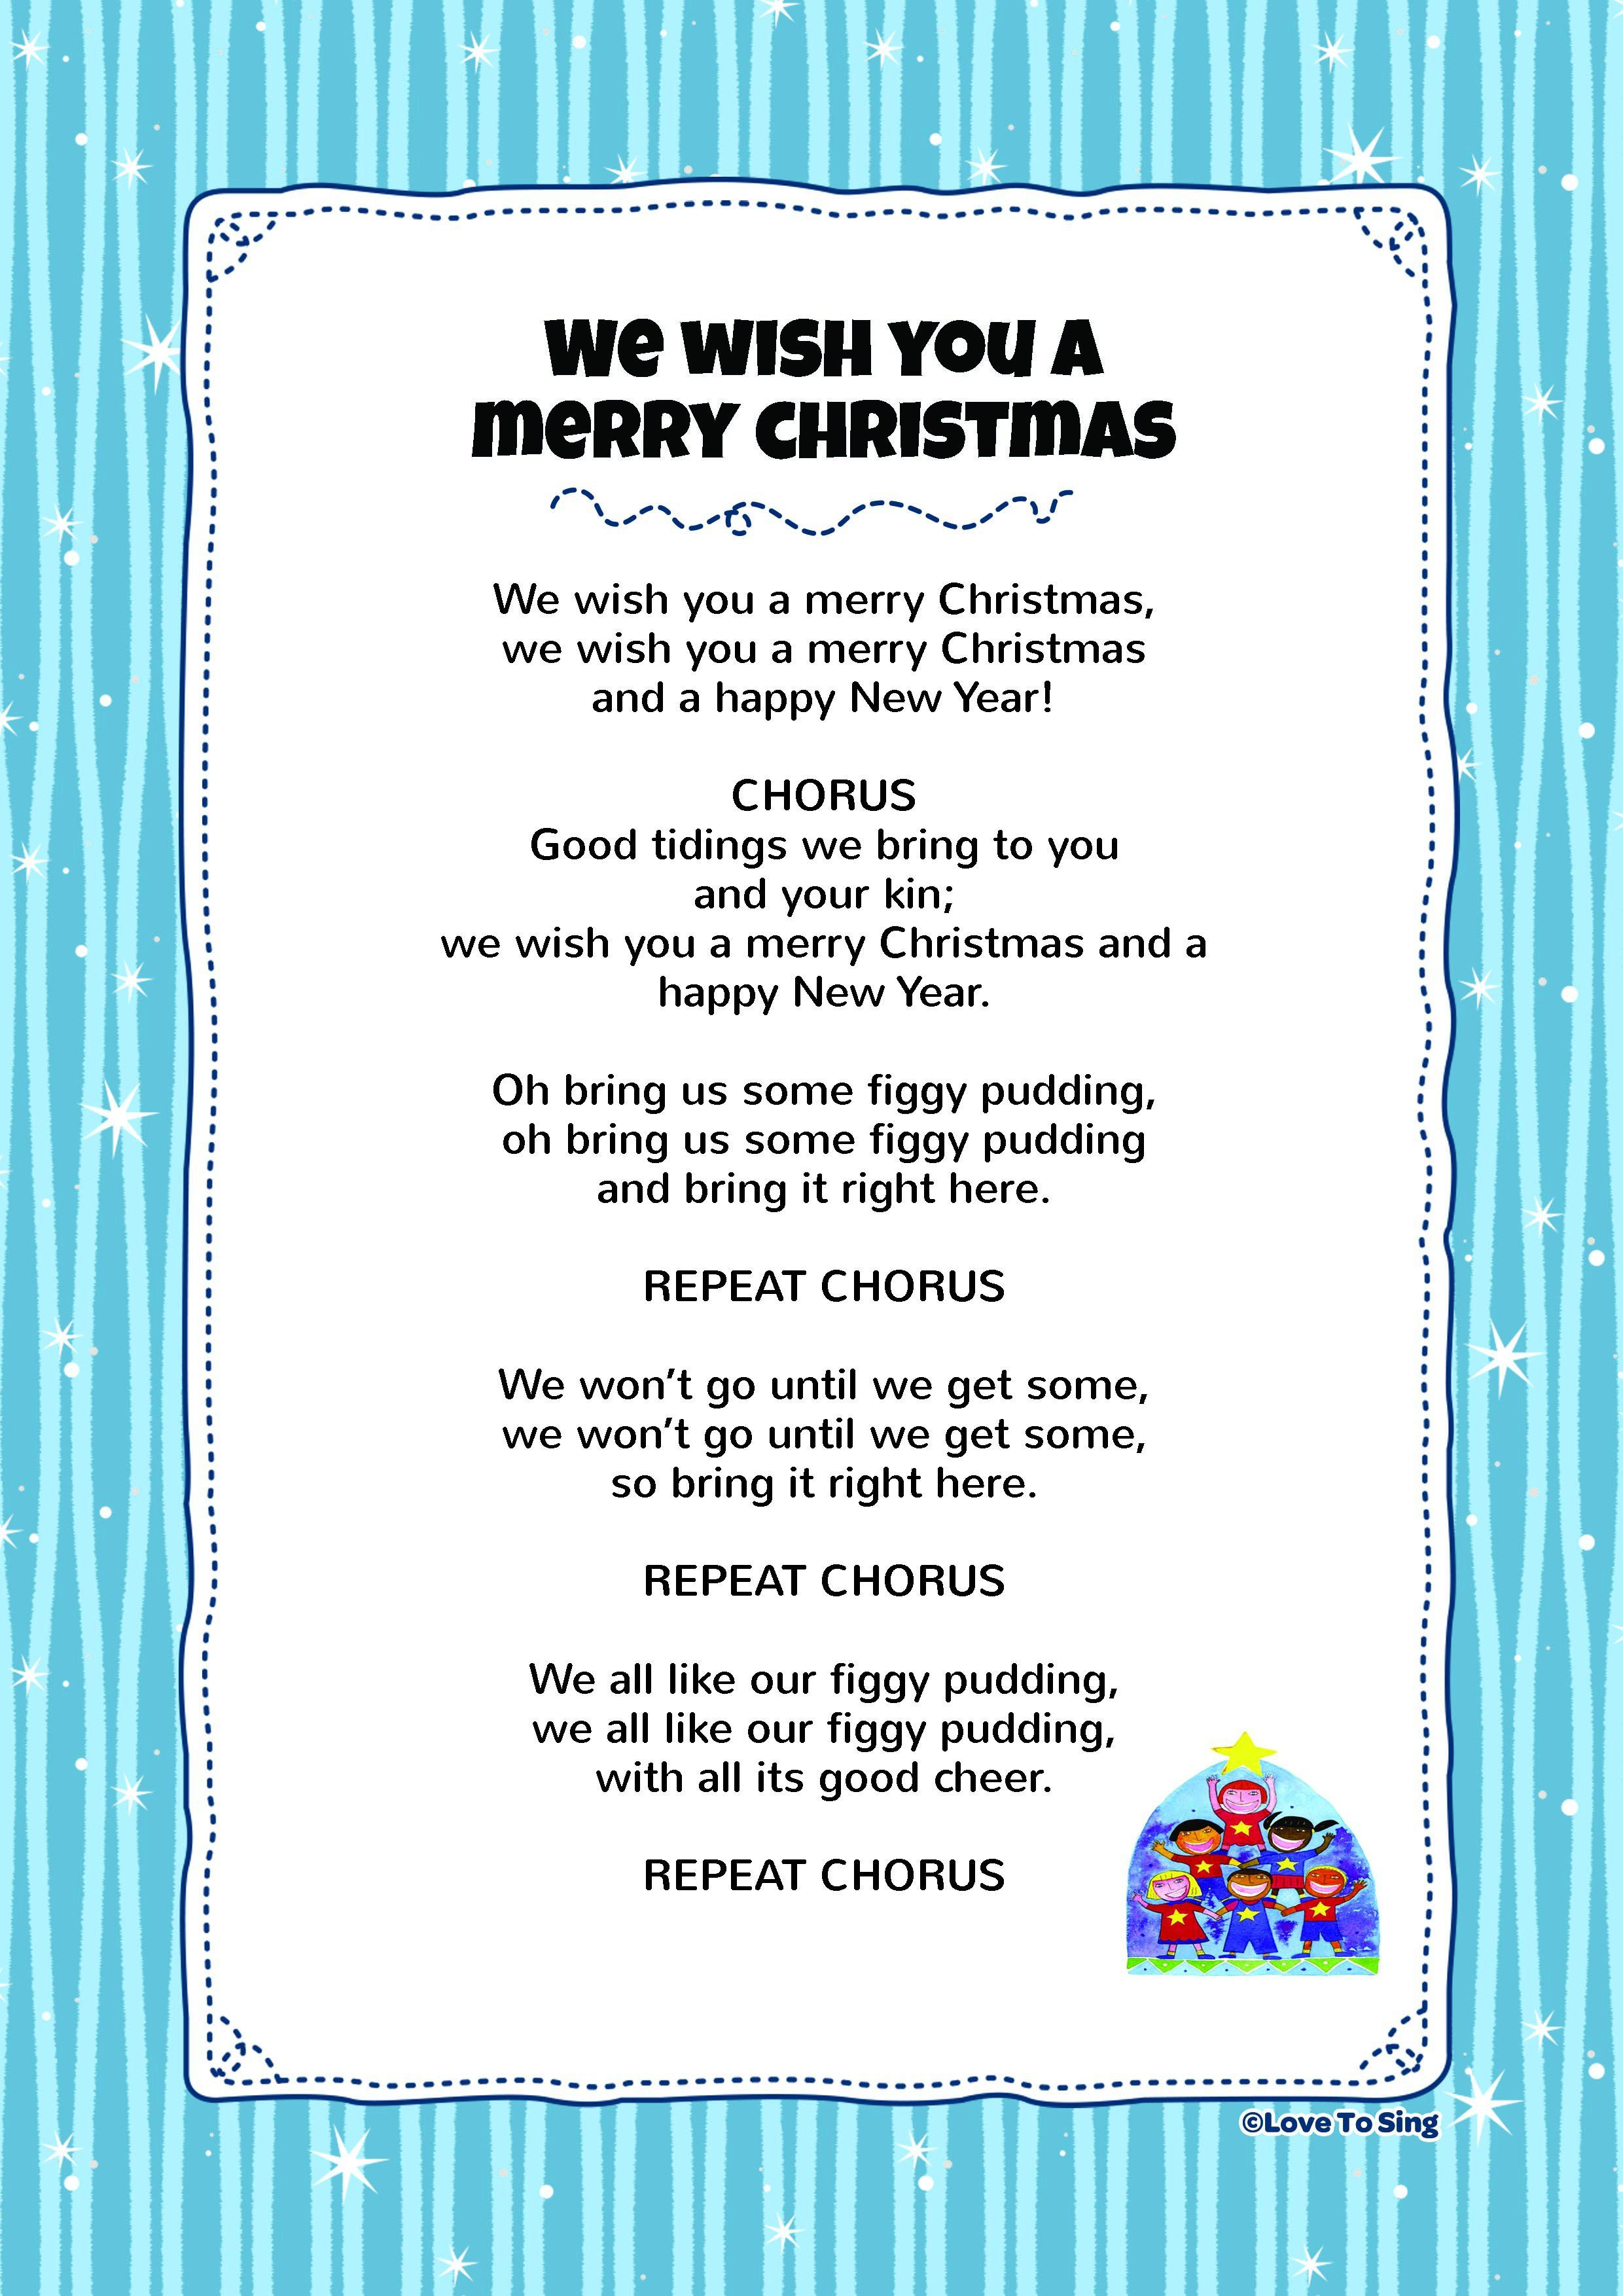 We Wish You A Merry Christmas Kids Video Song With Free Lyrics Activities Christmas Songs Lyrics Christmas Carols Lyrics Christmas Lyrics